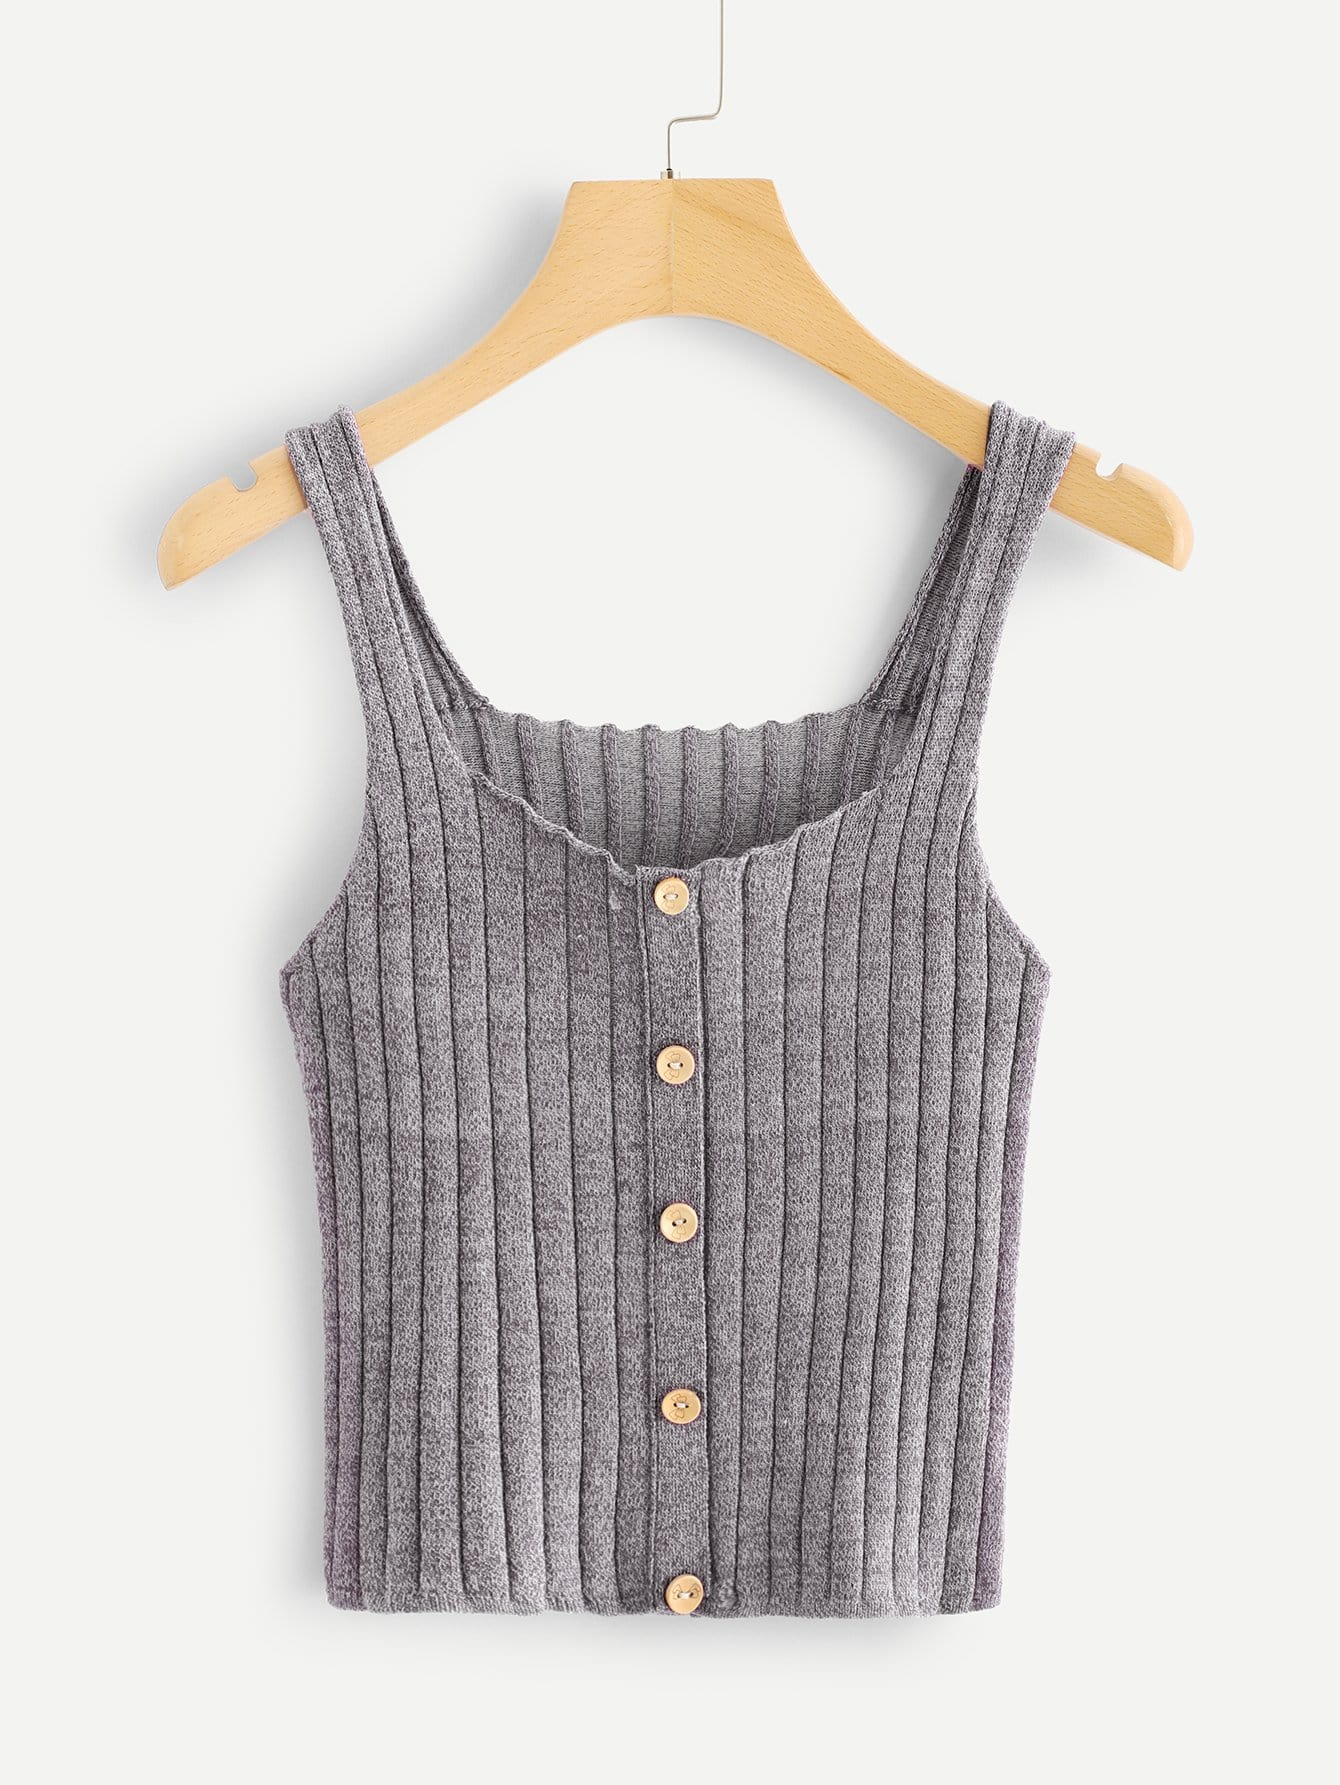 Thick Strap Button Front Crop Knit Cami Top button front strap dress